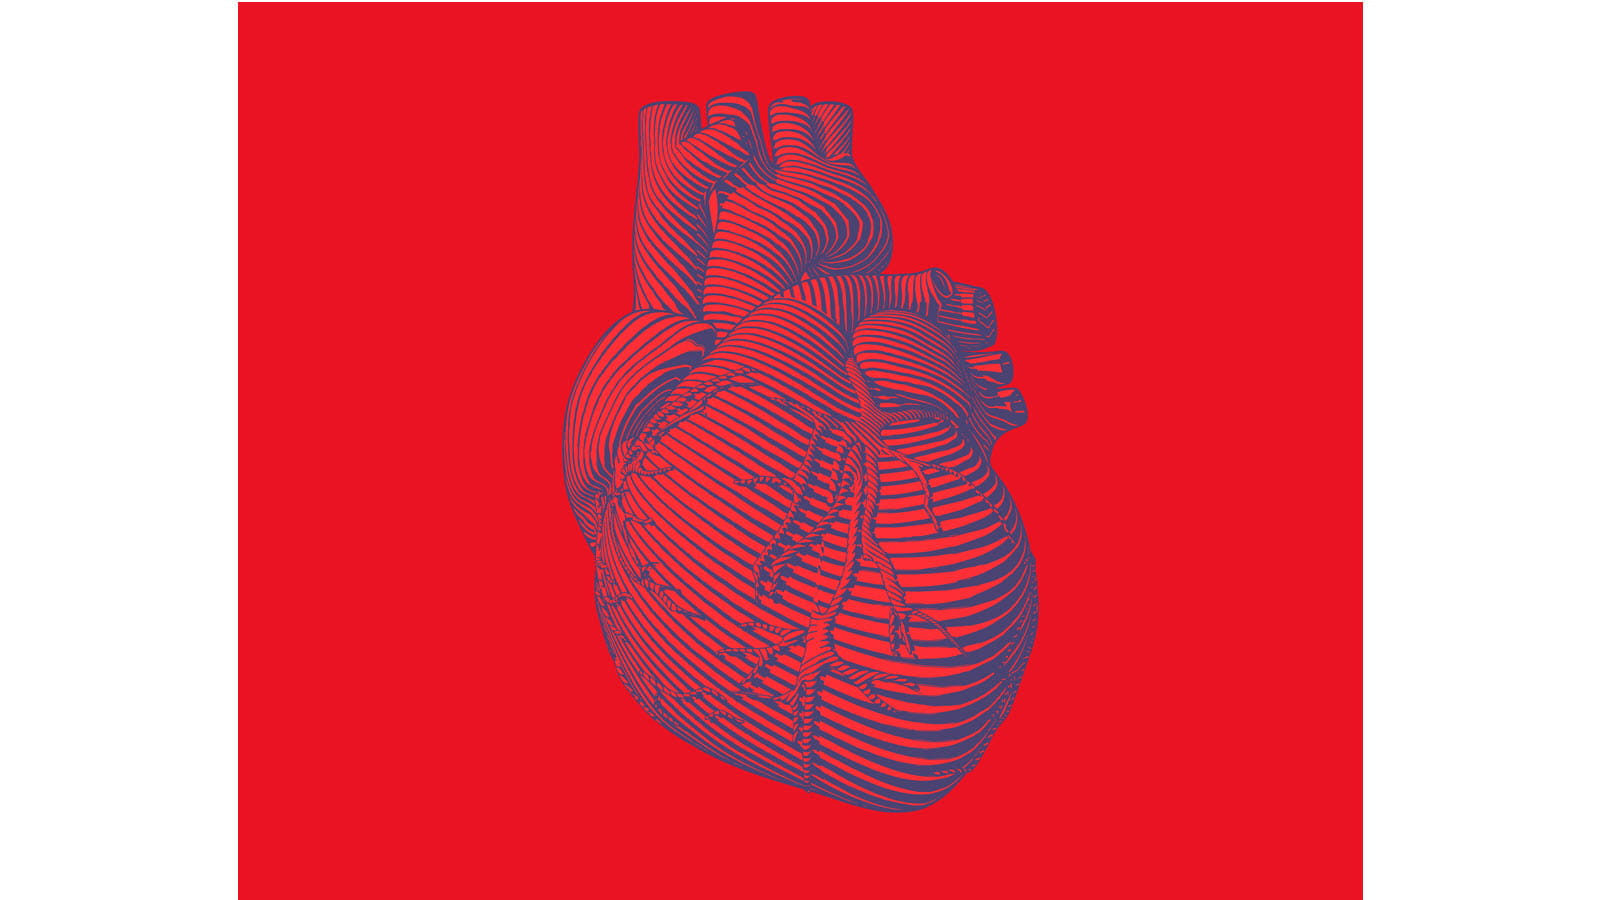 anatomical heart in blue on red background